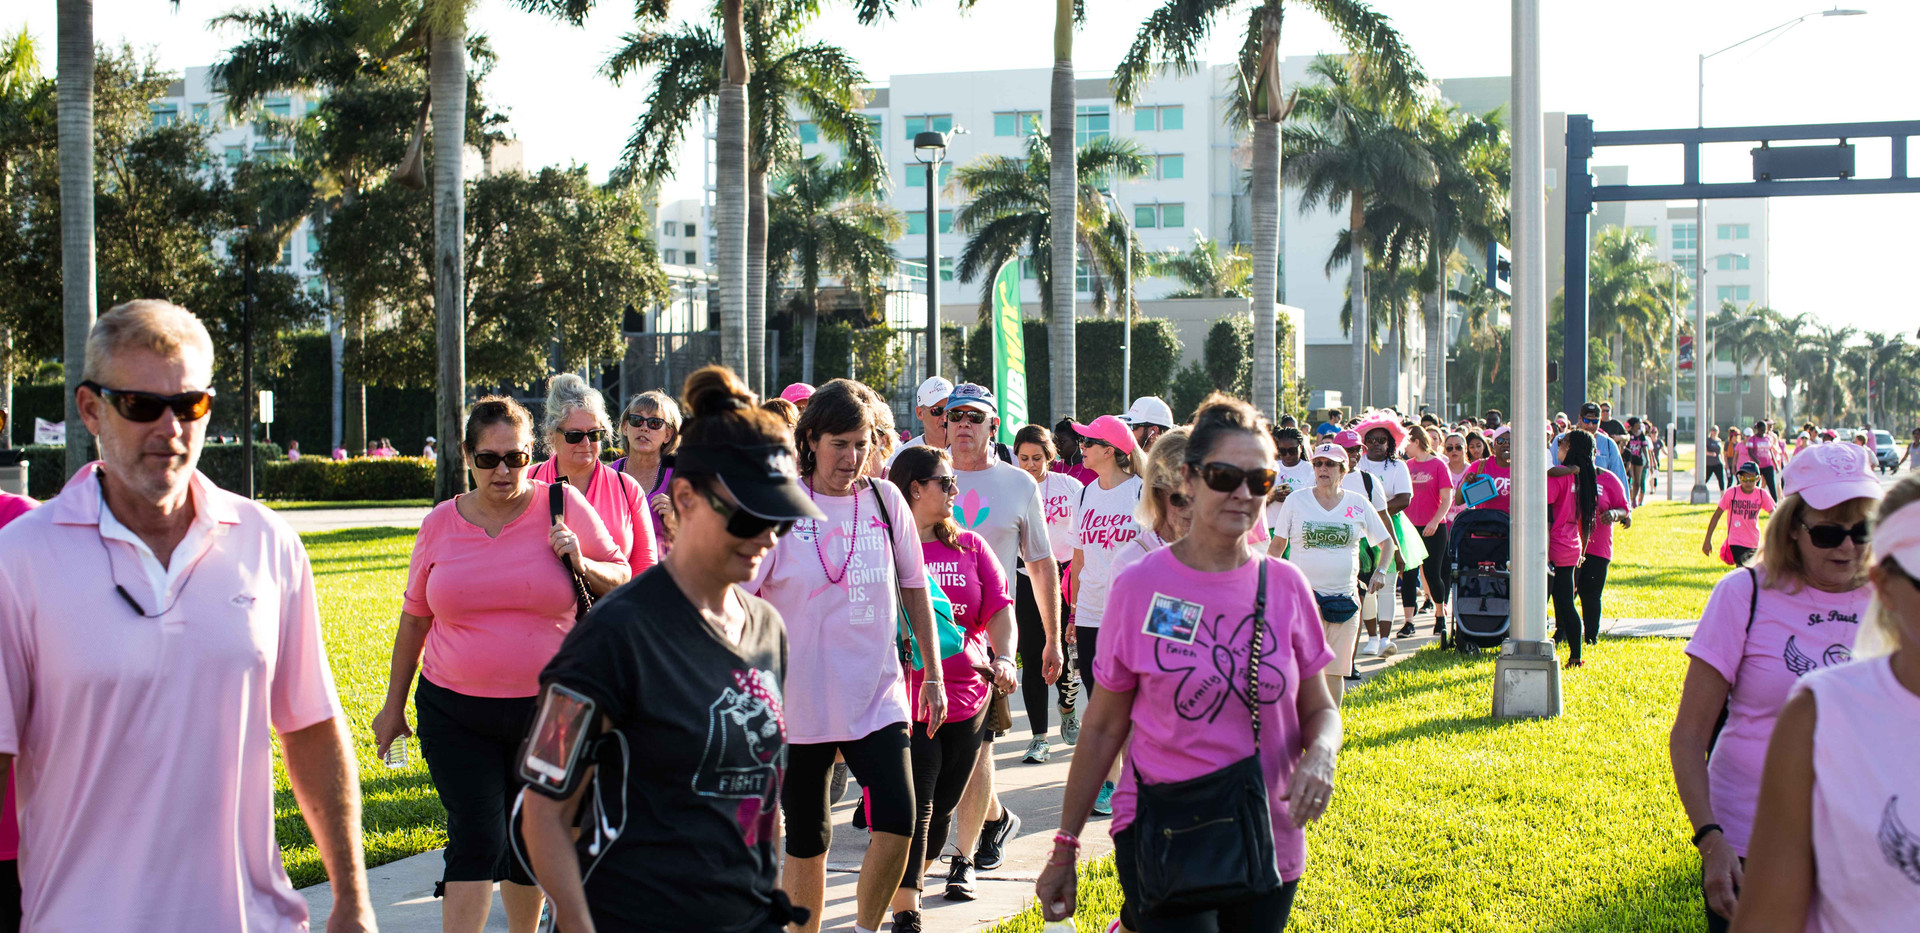 BreastCancerWalk-32.jpg